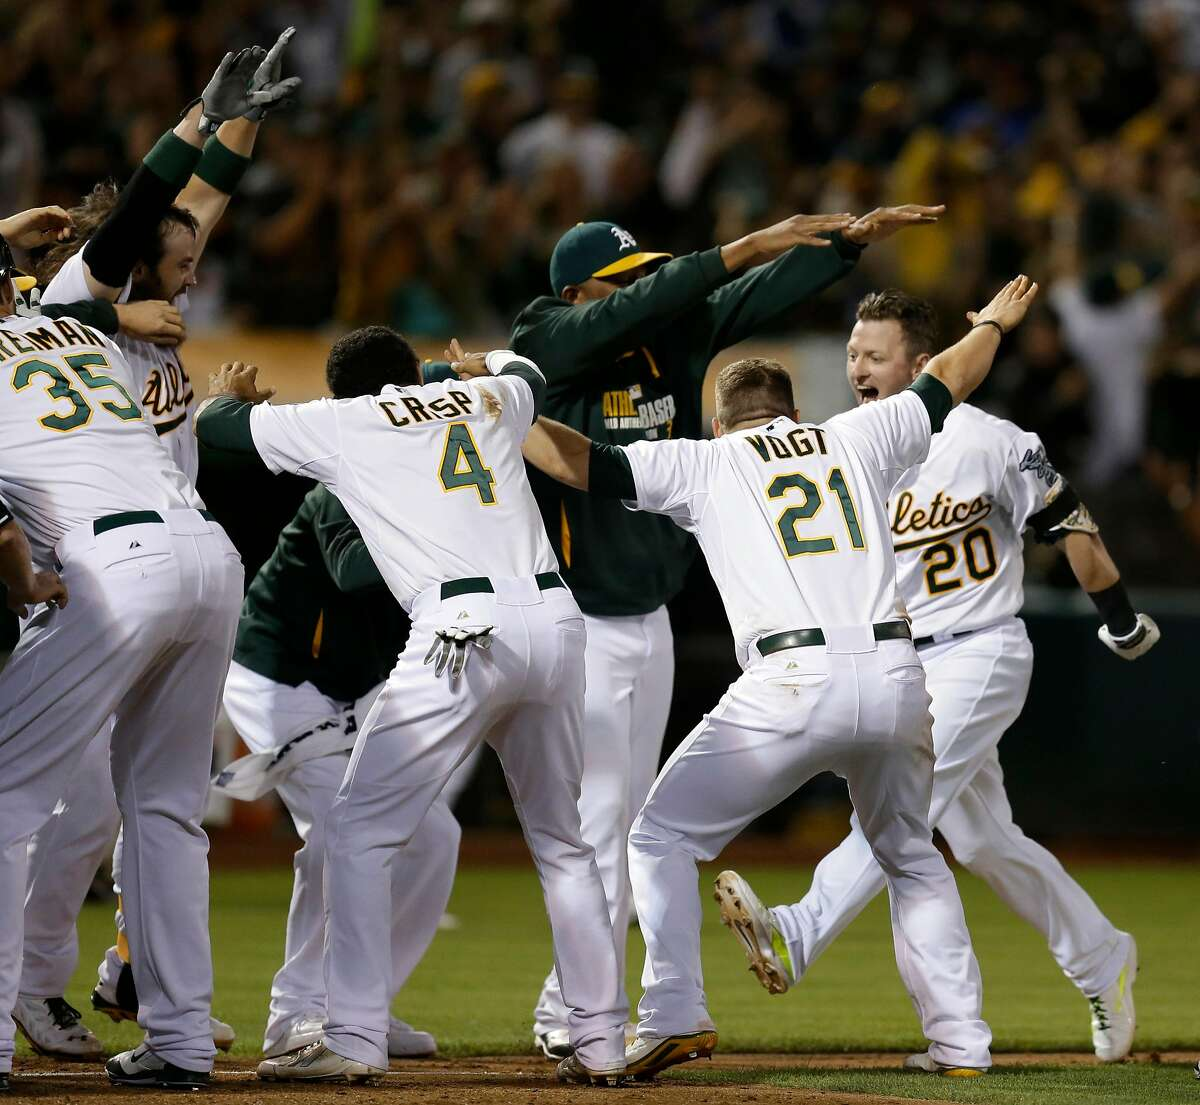 Oakland Athletics' Josh Donaldson (20) is welcomed after hitting the game-winning three-run home run off Baltimore Orioles' Zach Britton in the ninth inning of a baseball game Friday, July 18, 2014, in Oakland, Calif. Oakland won 5-4. (AP Photo/Ben Margot)